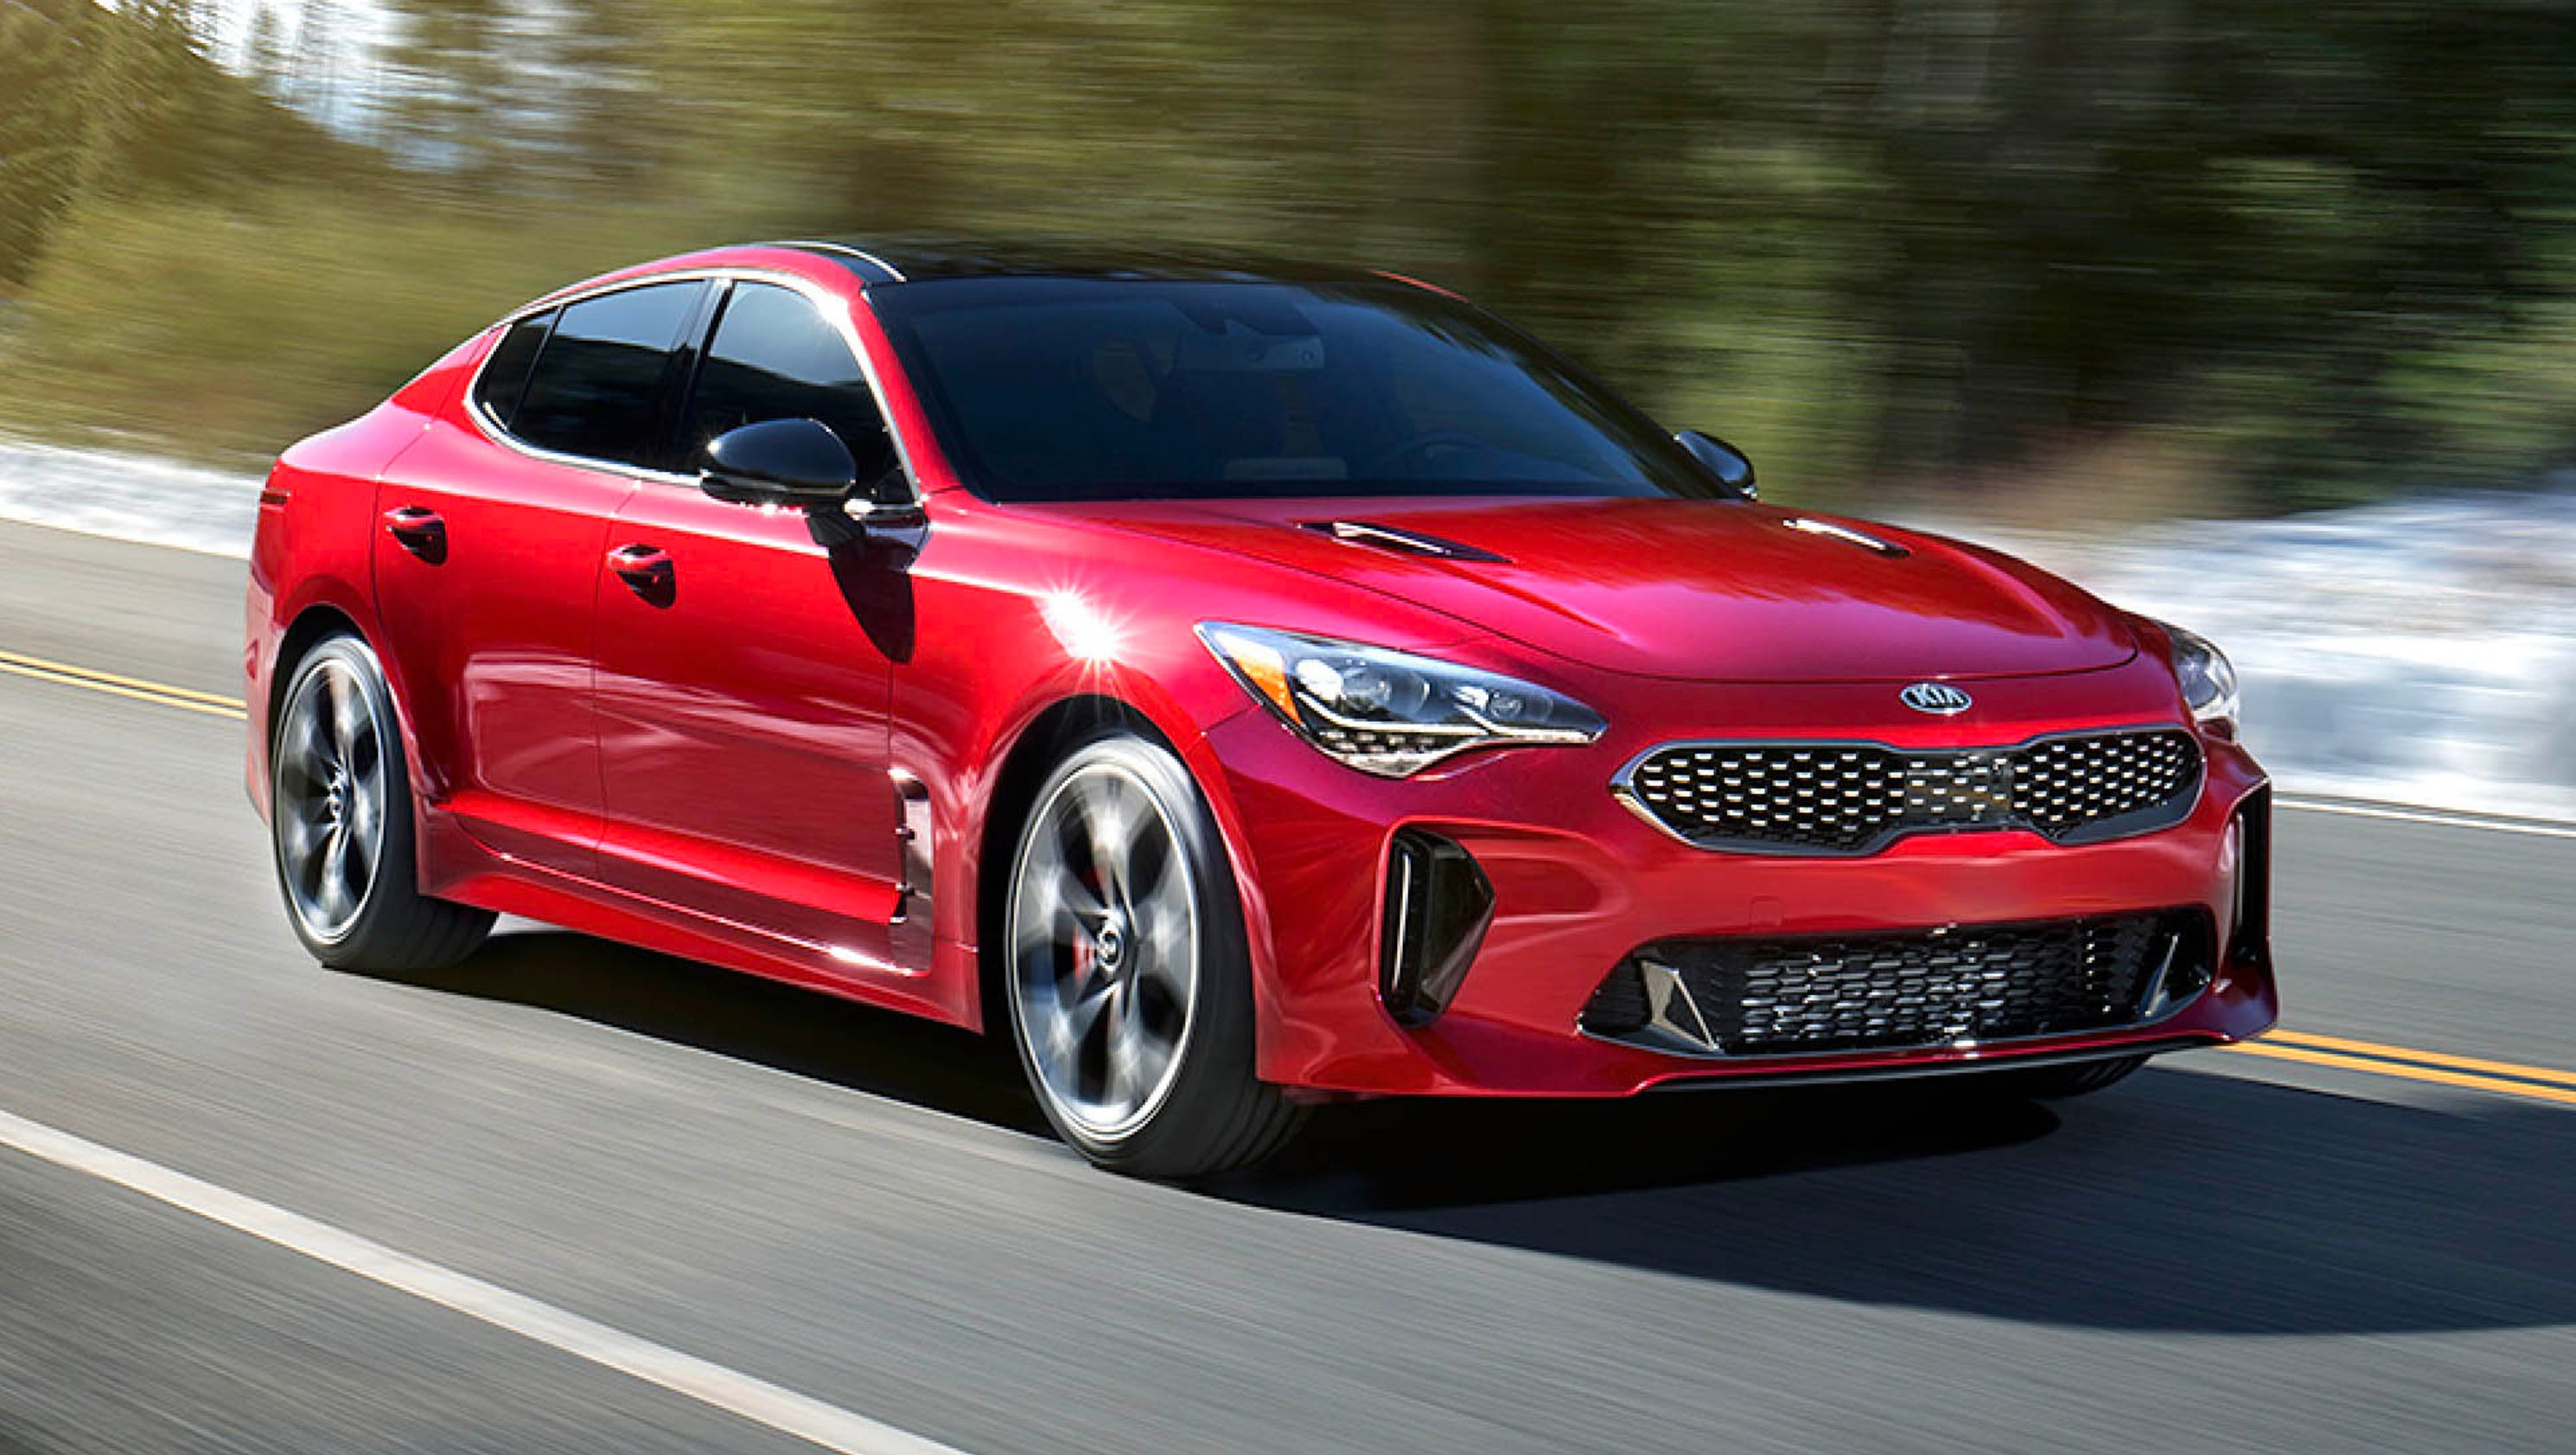 cars trains the kia japans drive tanks review enlarge three chassis hyundai autos on family ioniq japan parked car one e and lawn body korean niro s